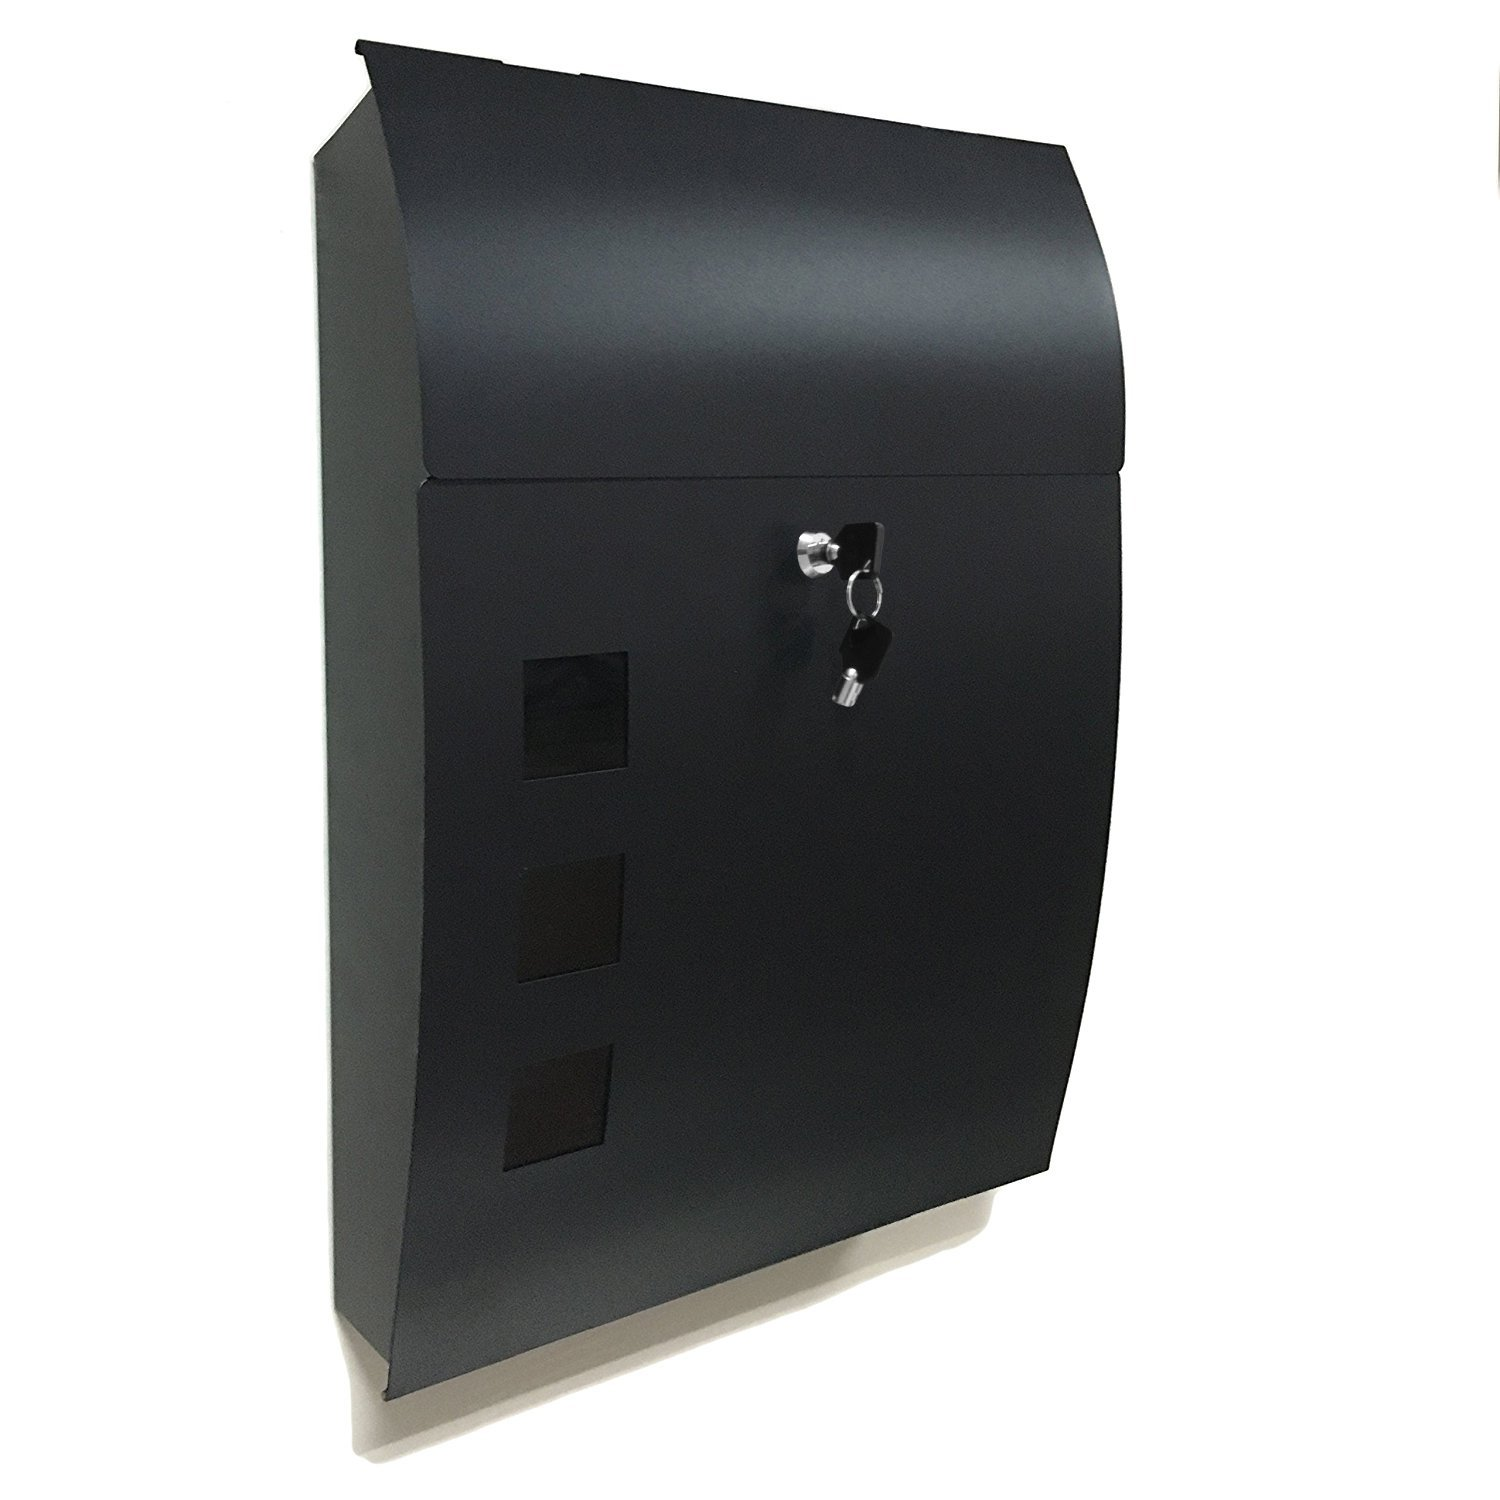 Mailbox stainless steel locking mail box letterbox postal box modern - Black Wall Mounted Mailbox Large 18 Vertical Locking Drop Mail Box For Modern Houses Front Porch Residential Outdoor Rural Roadside Galvanized Steel Cover